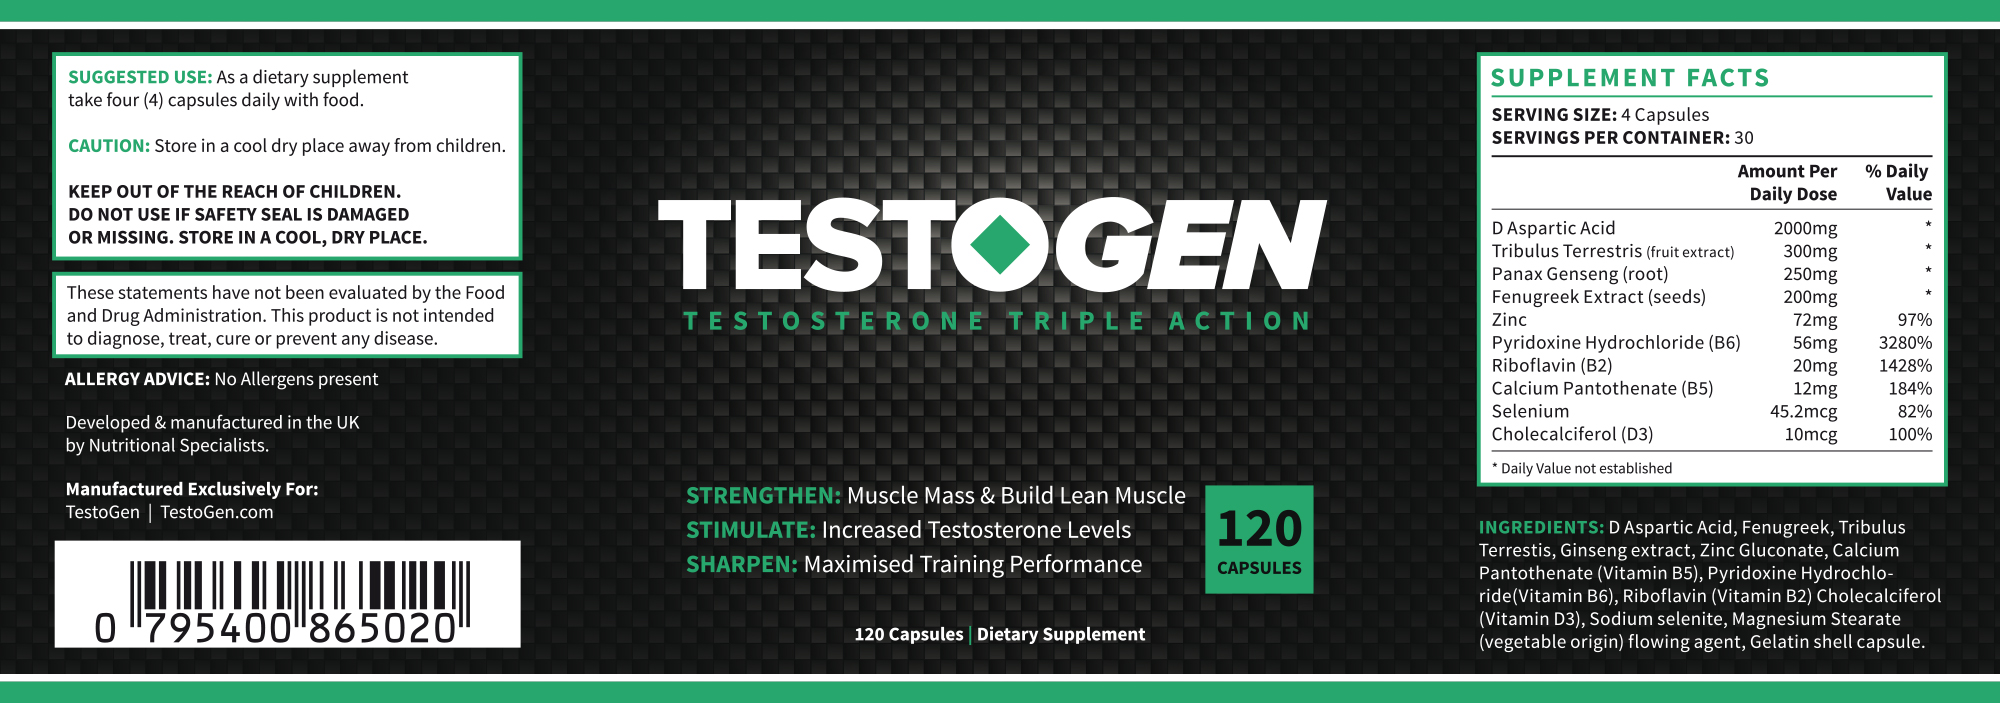 testogen_label